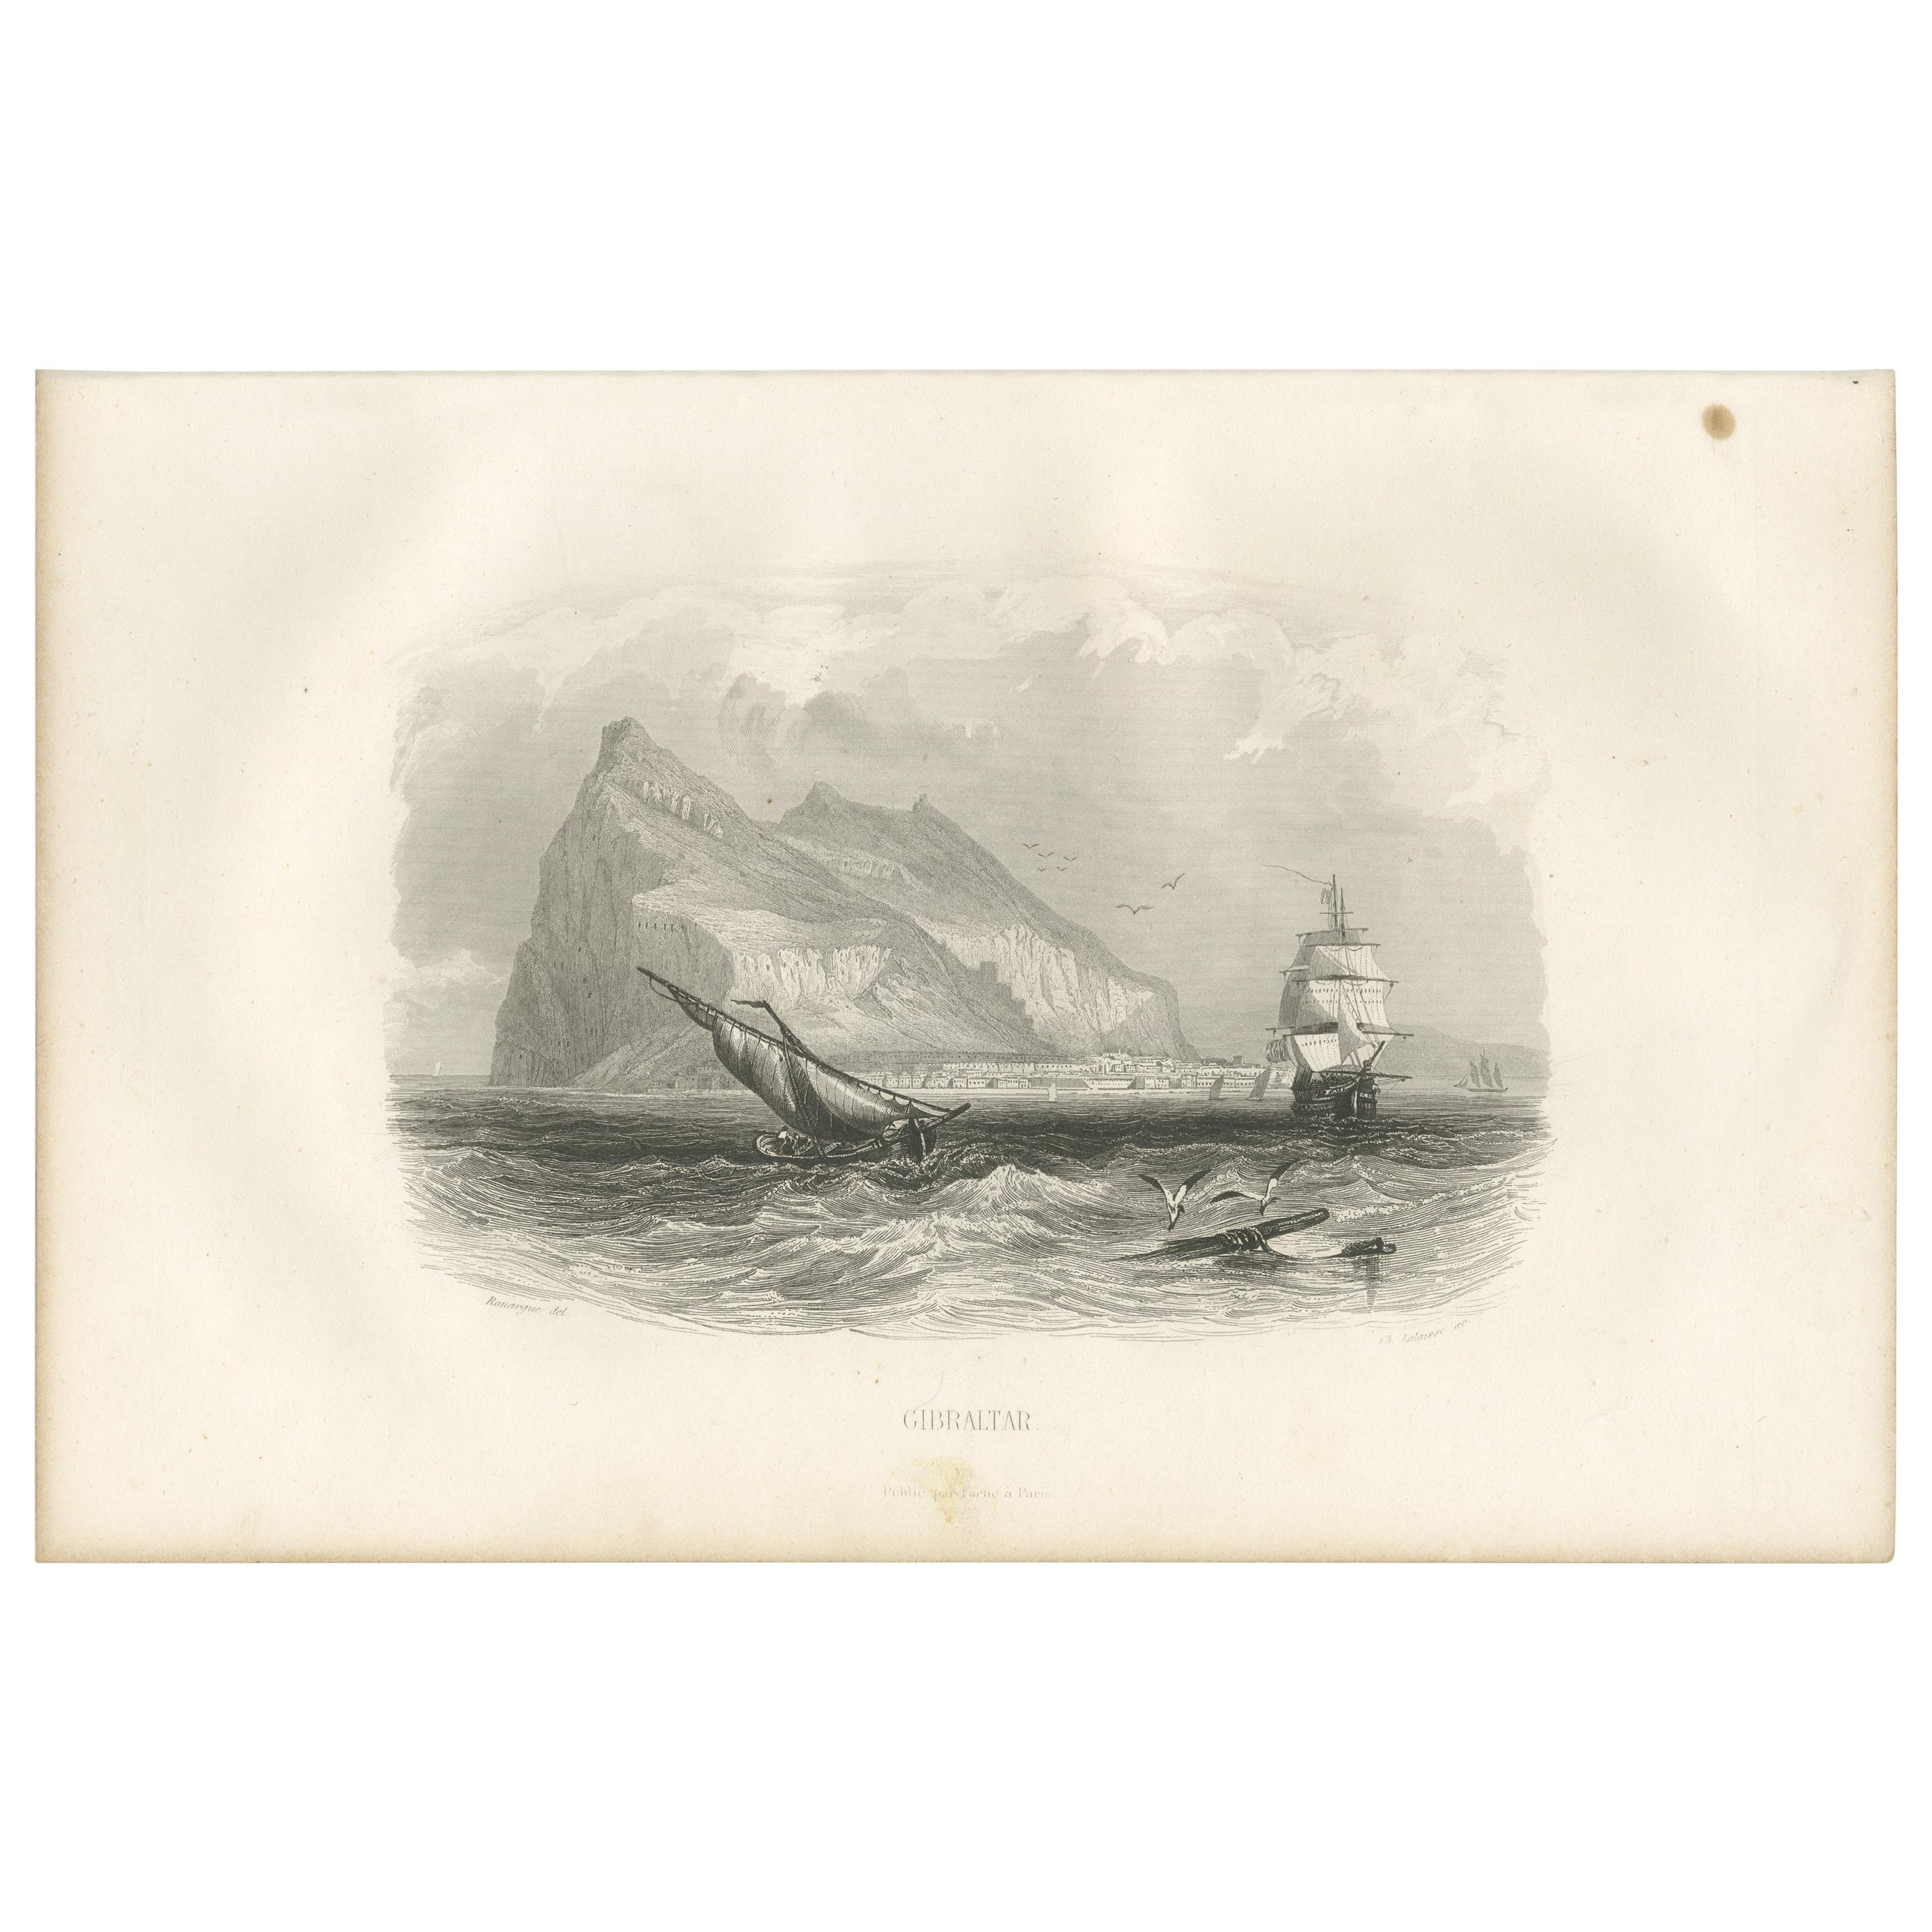 Antique Print with a view of Gibraltar by D'Urville (1853)